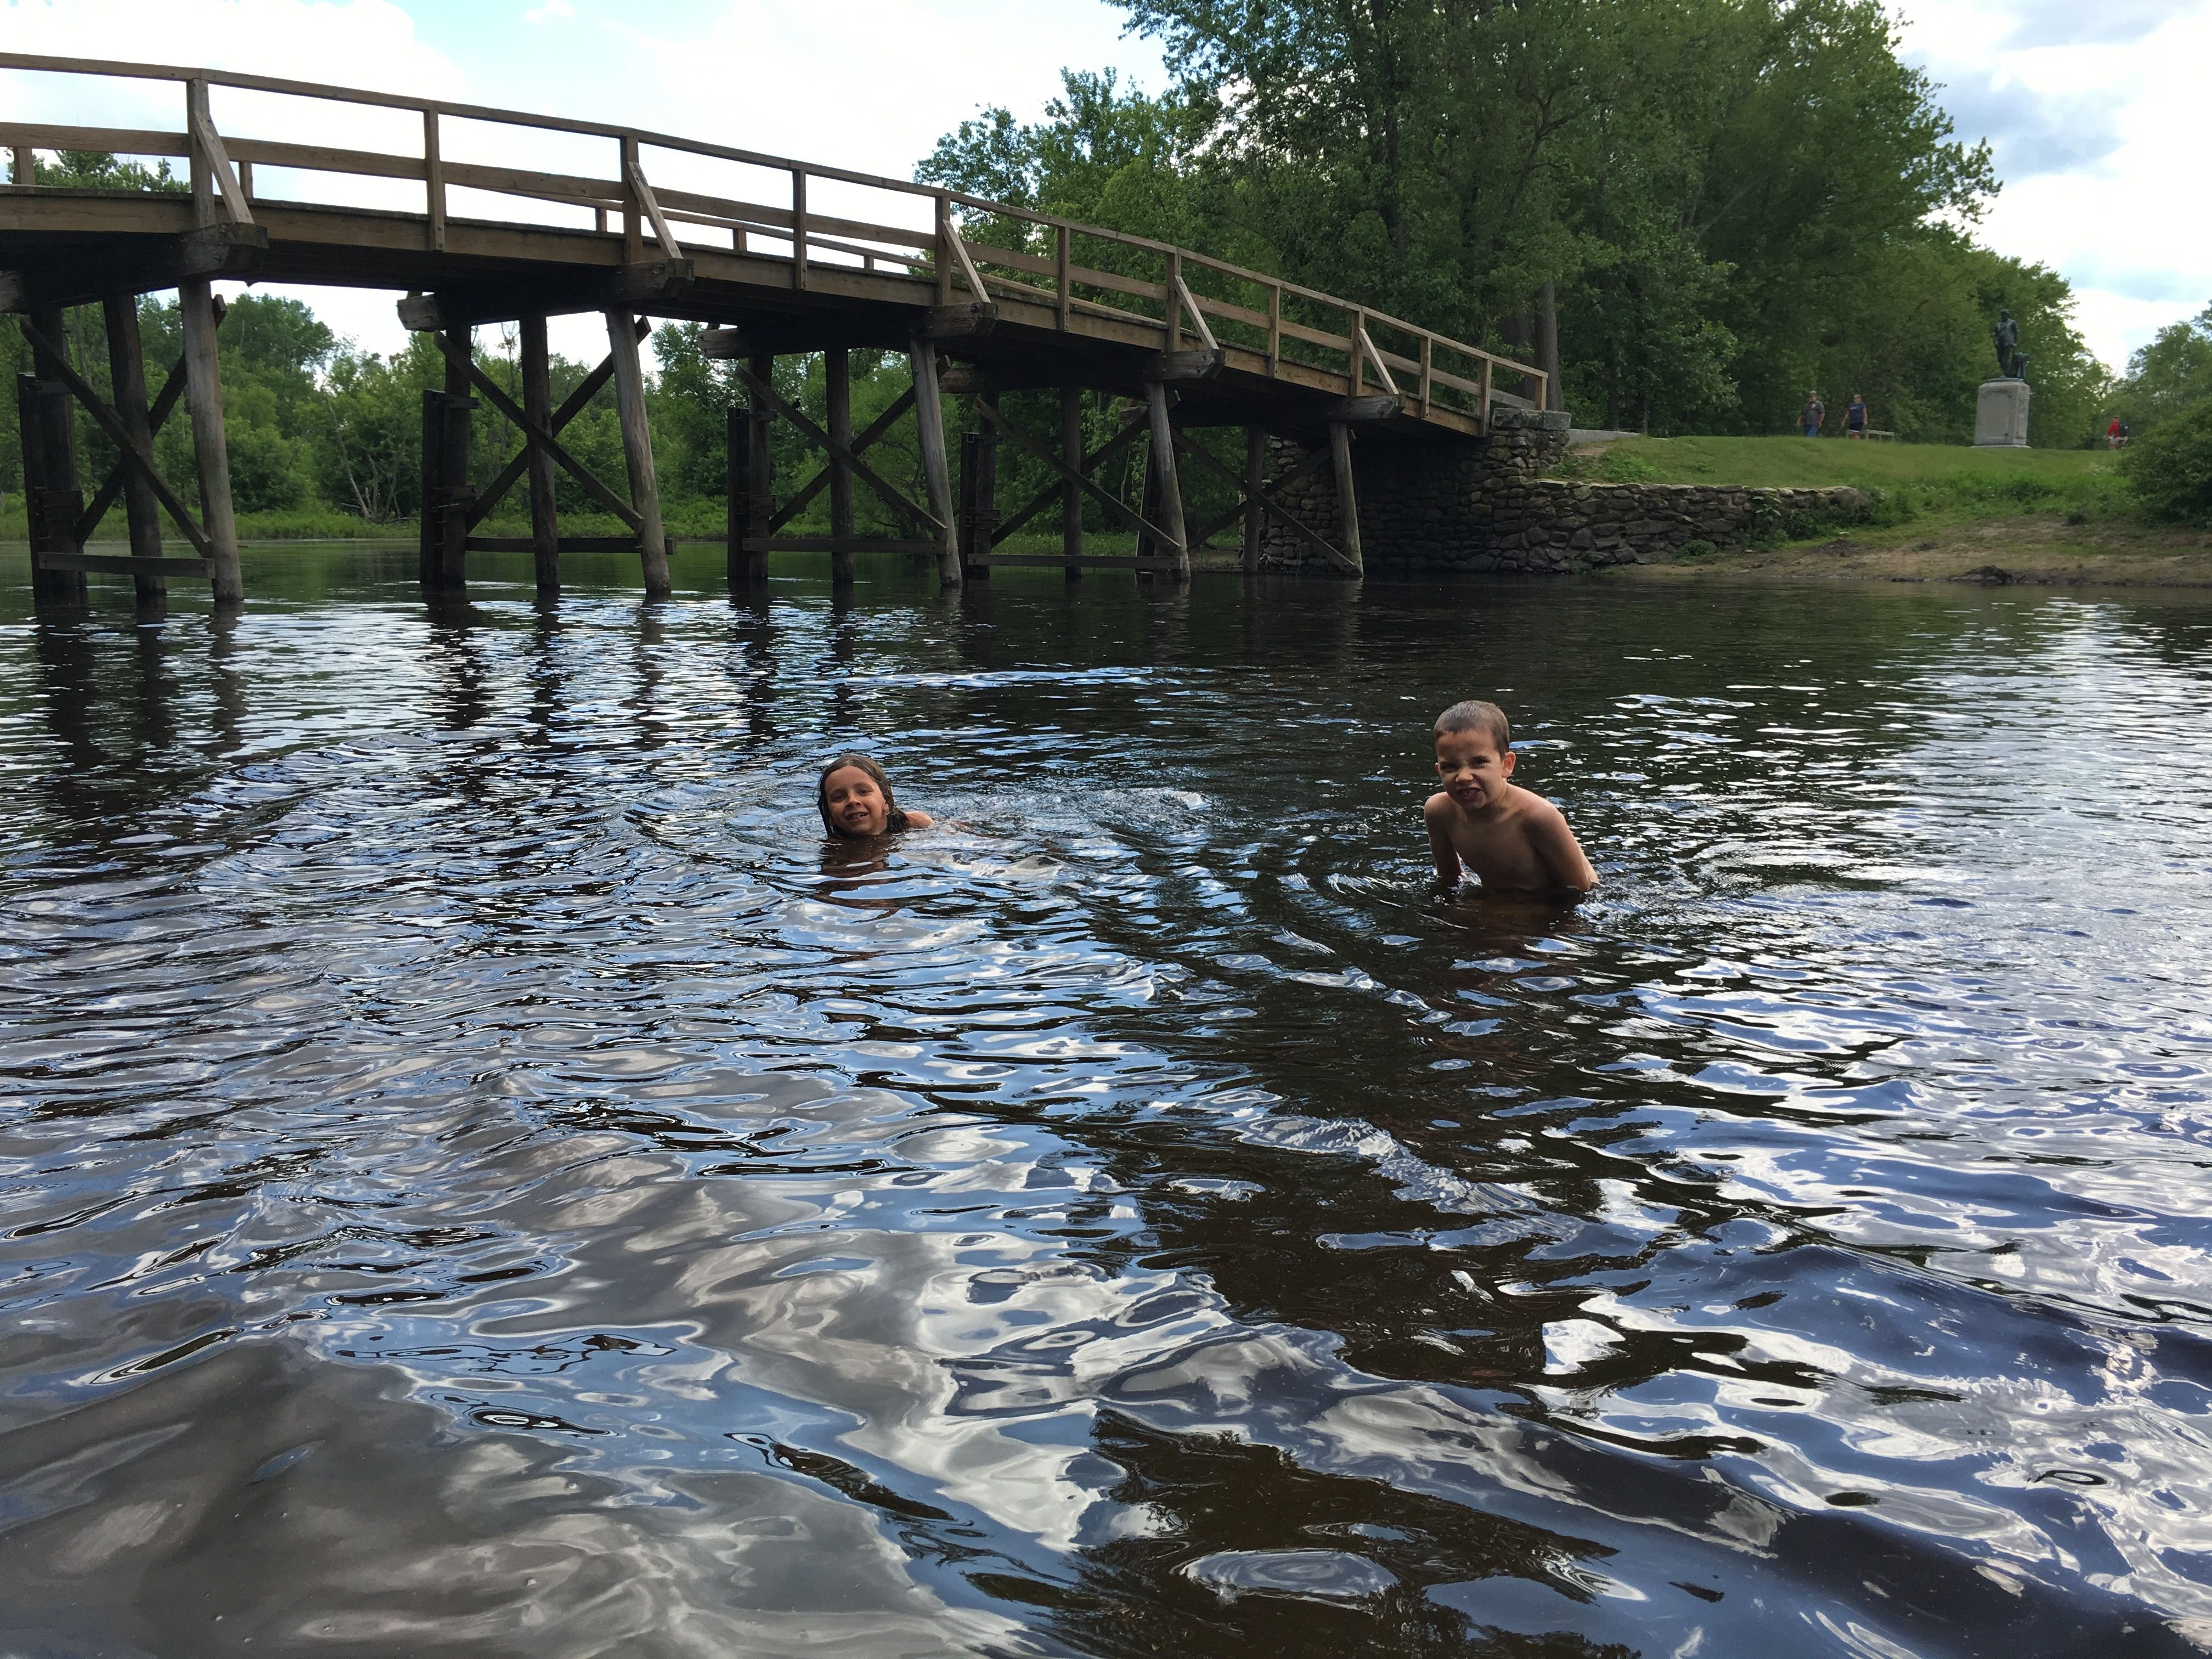 Two members of the Dayton crew wild swimming in the Concord River near Old North Bridge.  Concord, Massachusetts.  June 7, 2016 | Photo by Kat Dayton, St. George News